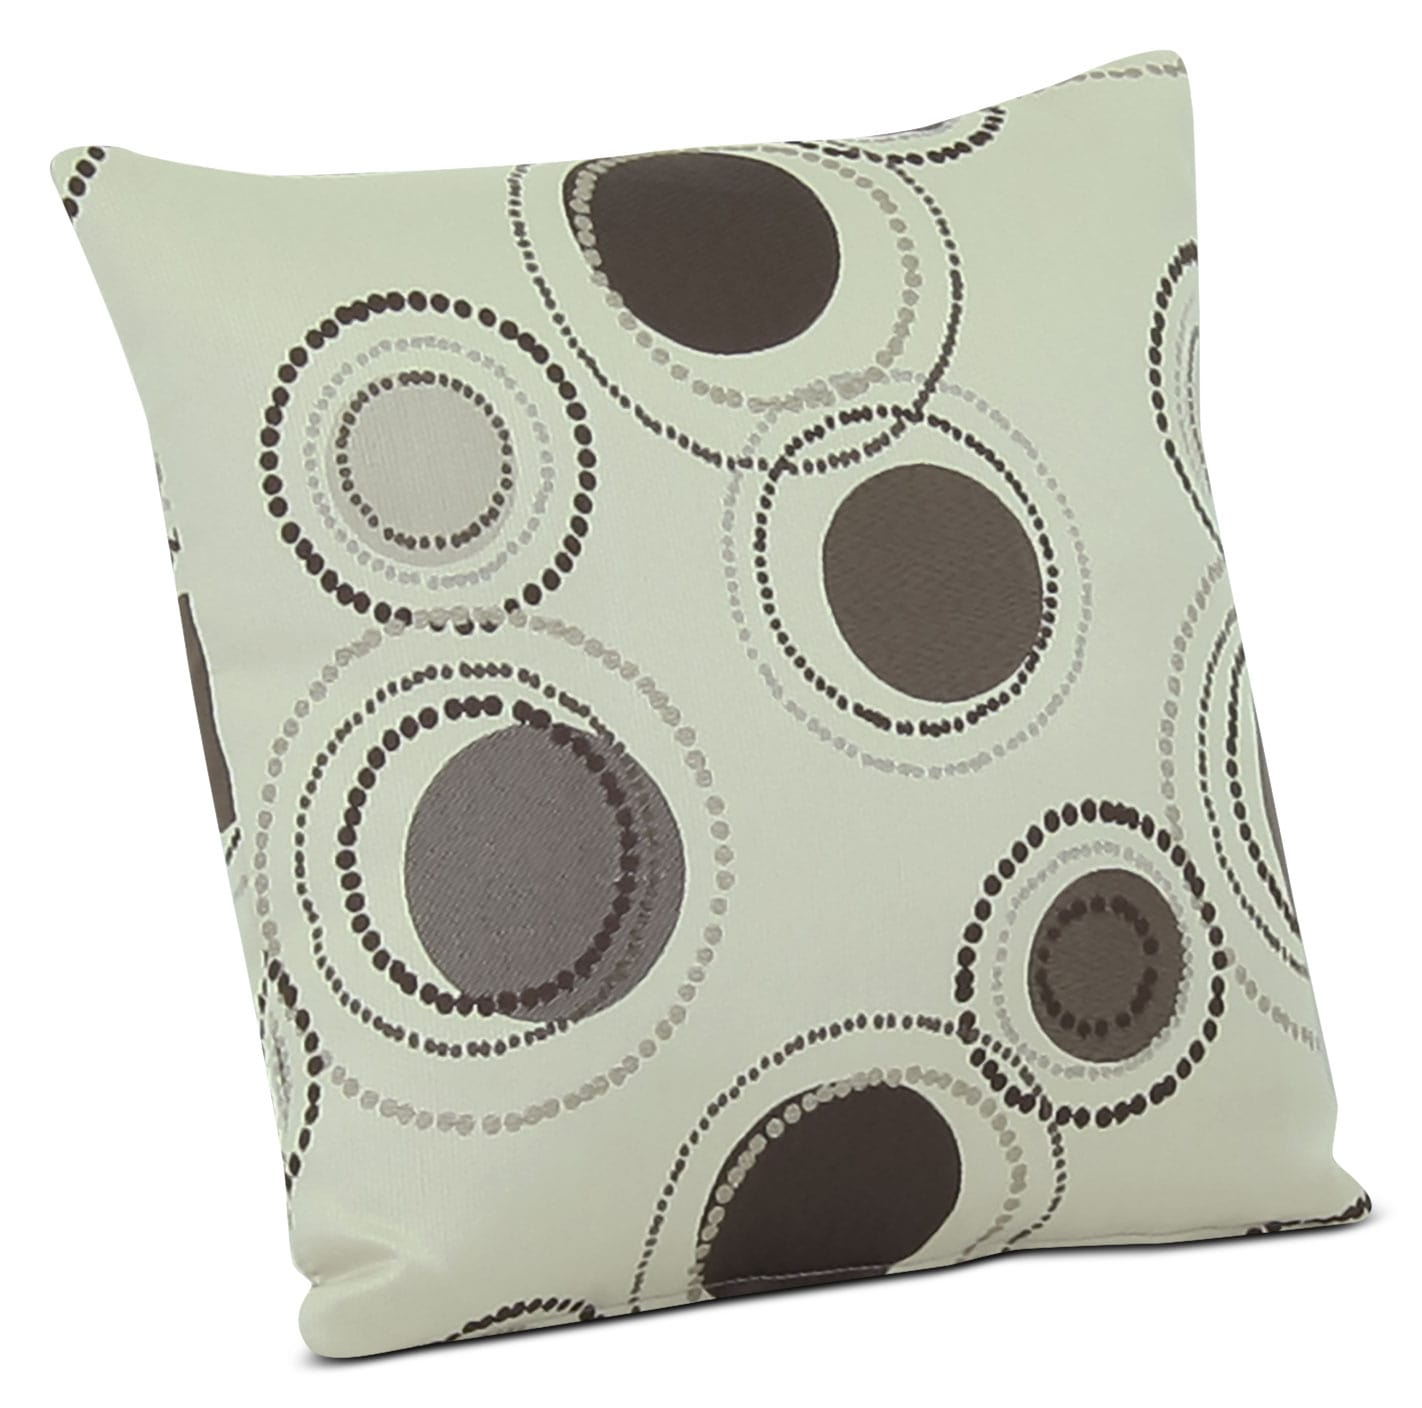 Designed2B Fabric Accent Throw Pillow – Stone